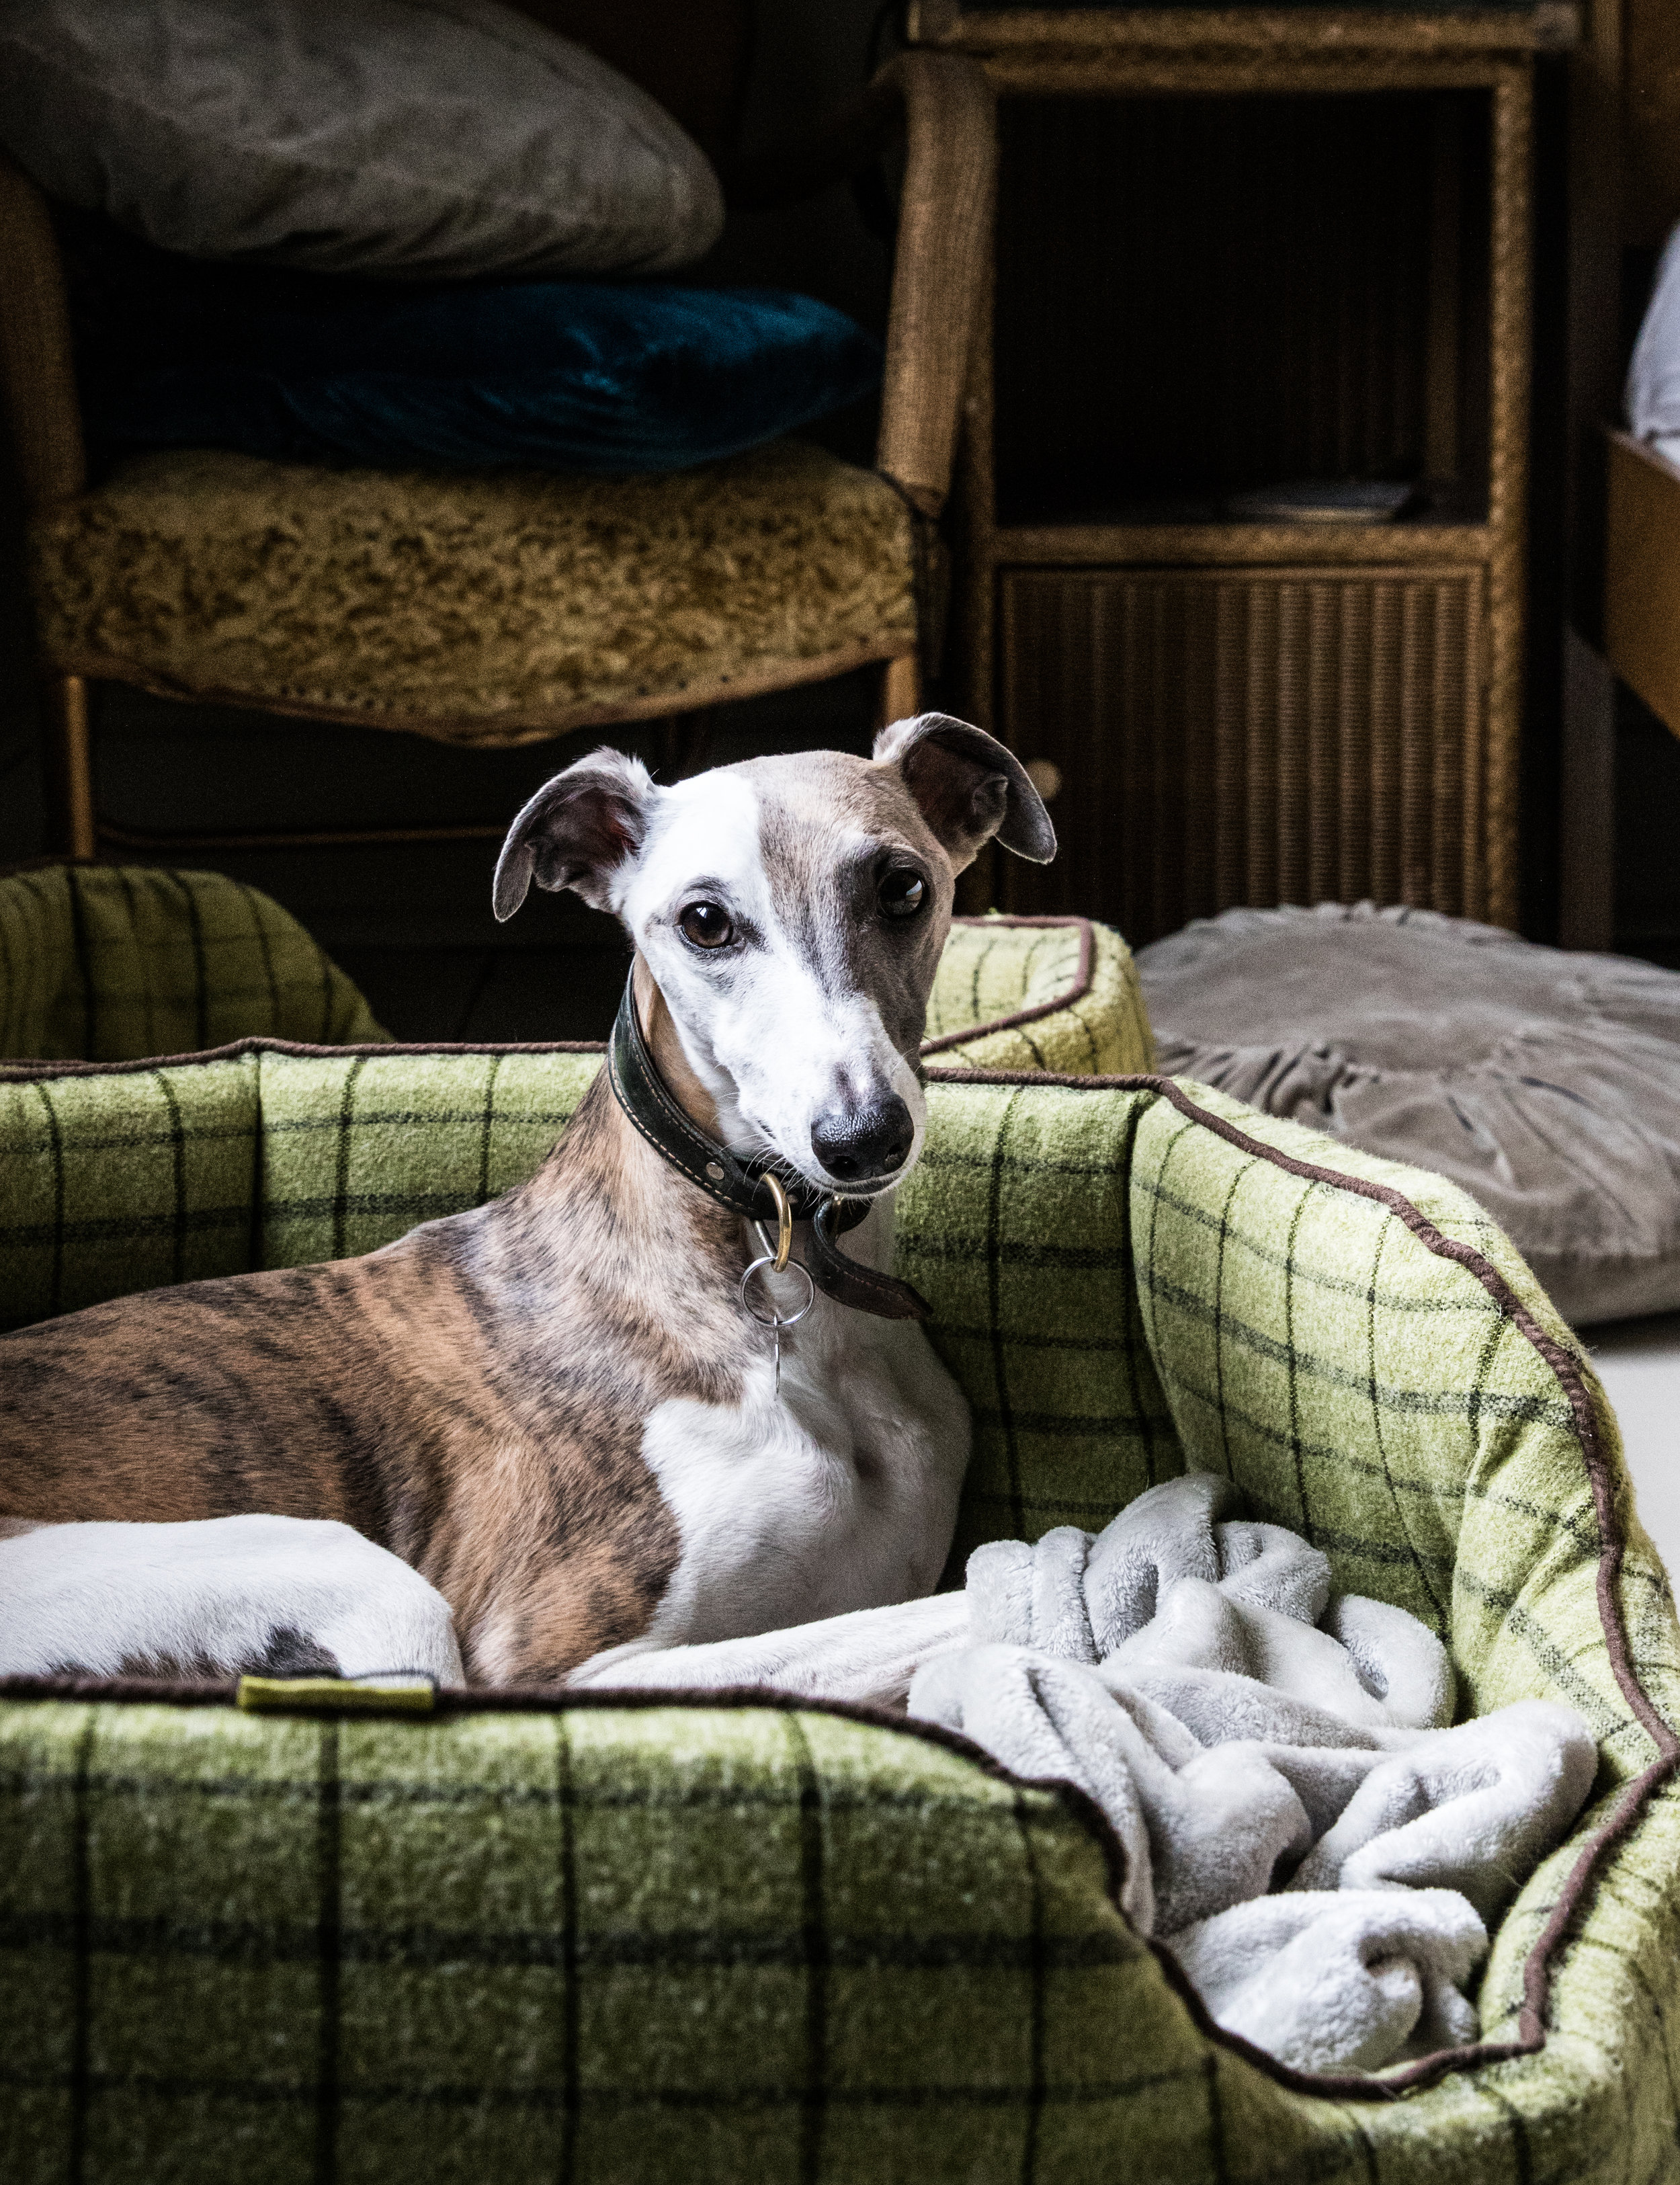 Ludo, the Whippet waiting patiently for his walk…